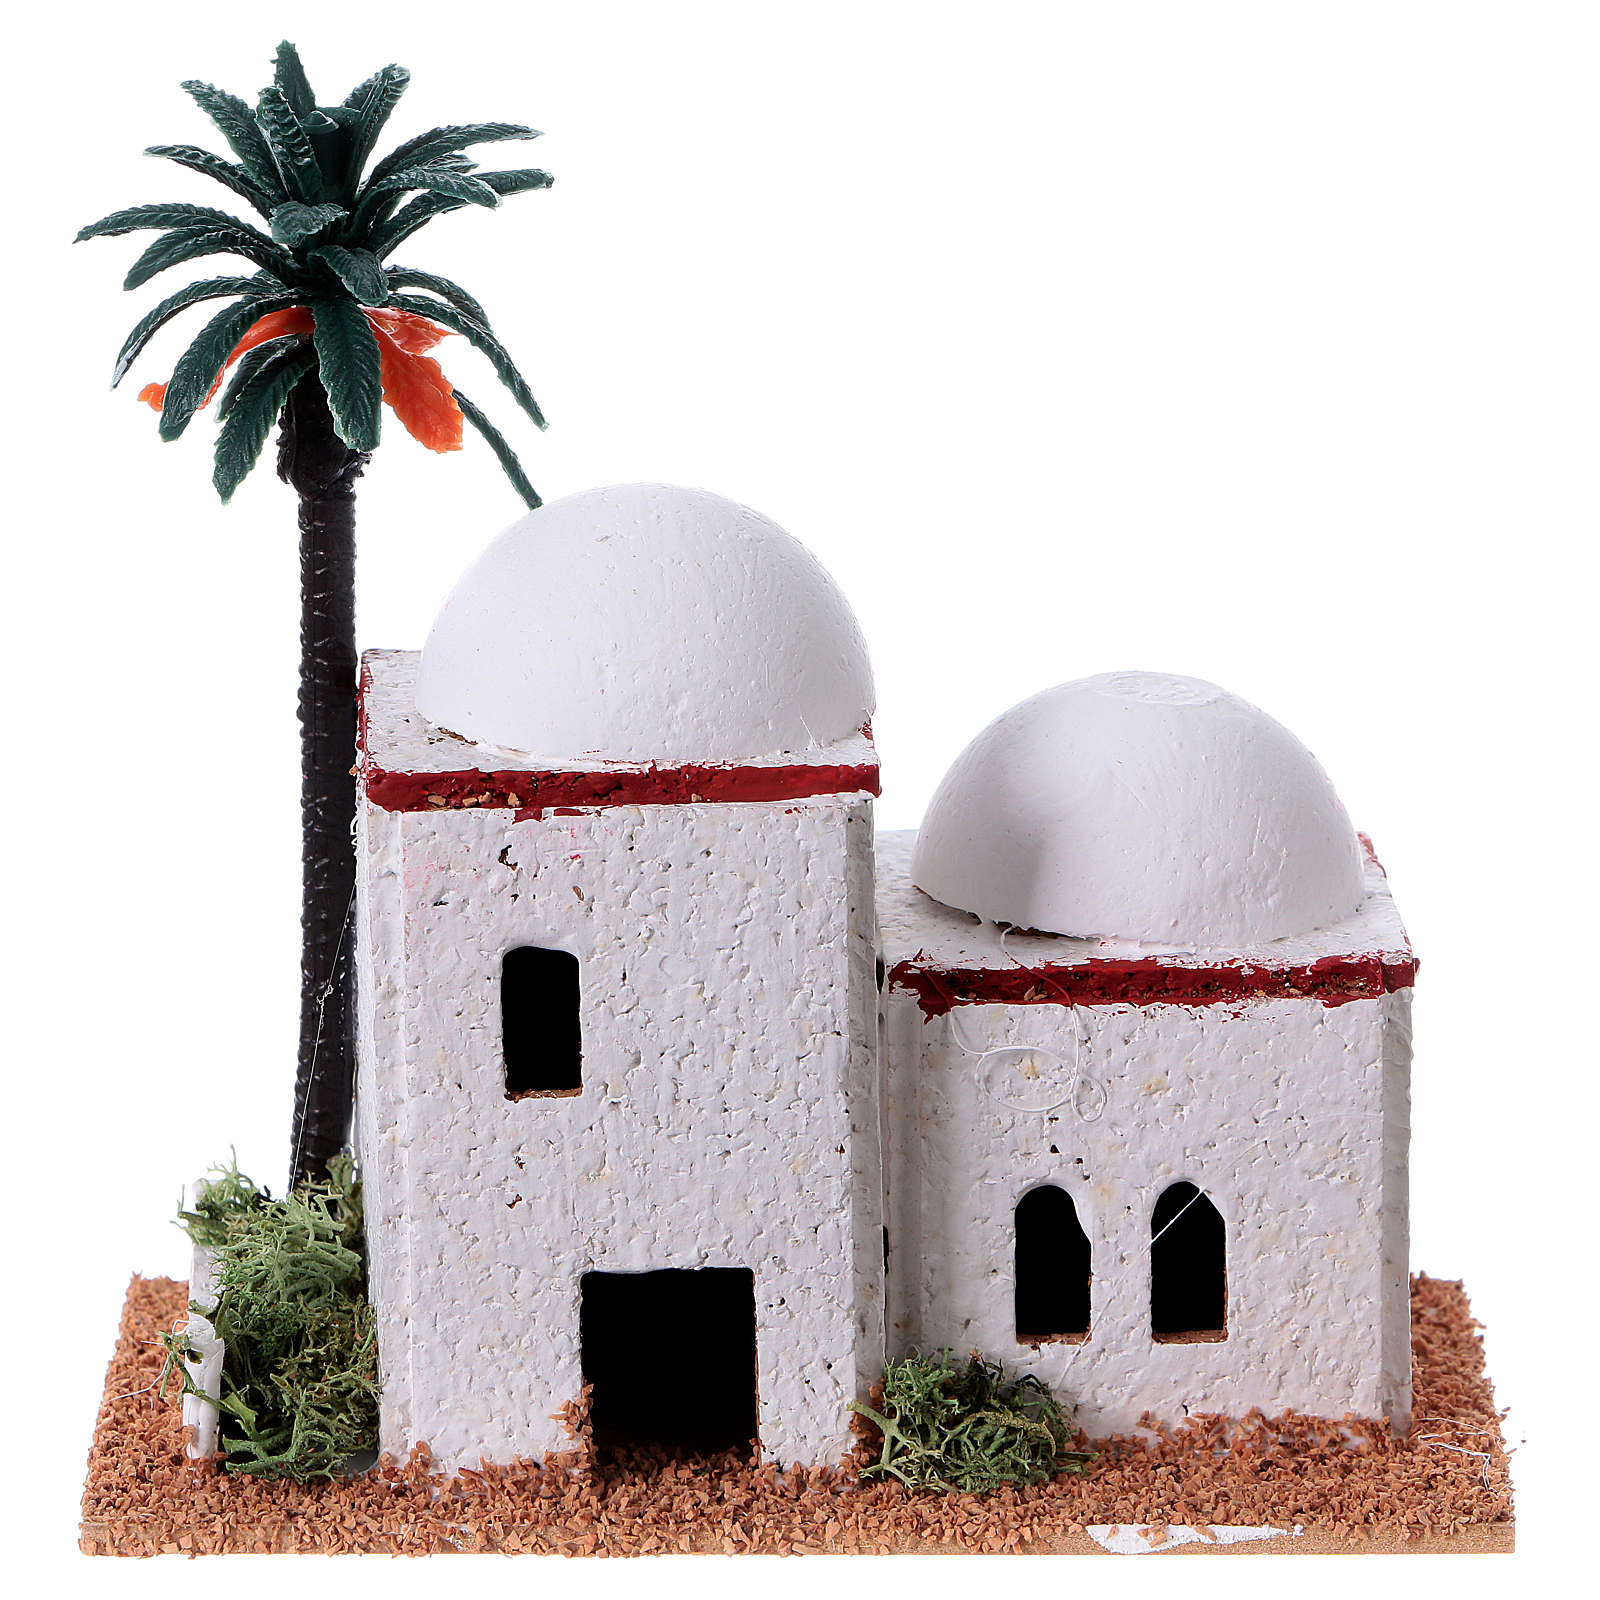 Arabian style house with palm measuring 12x7x13cm 4